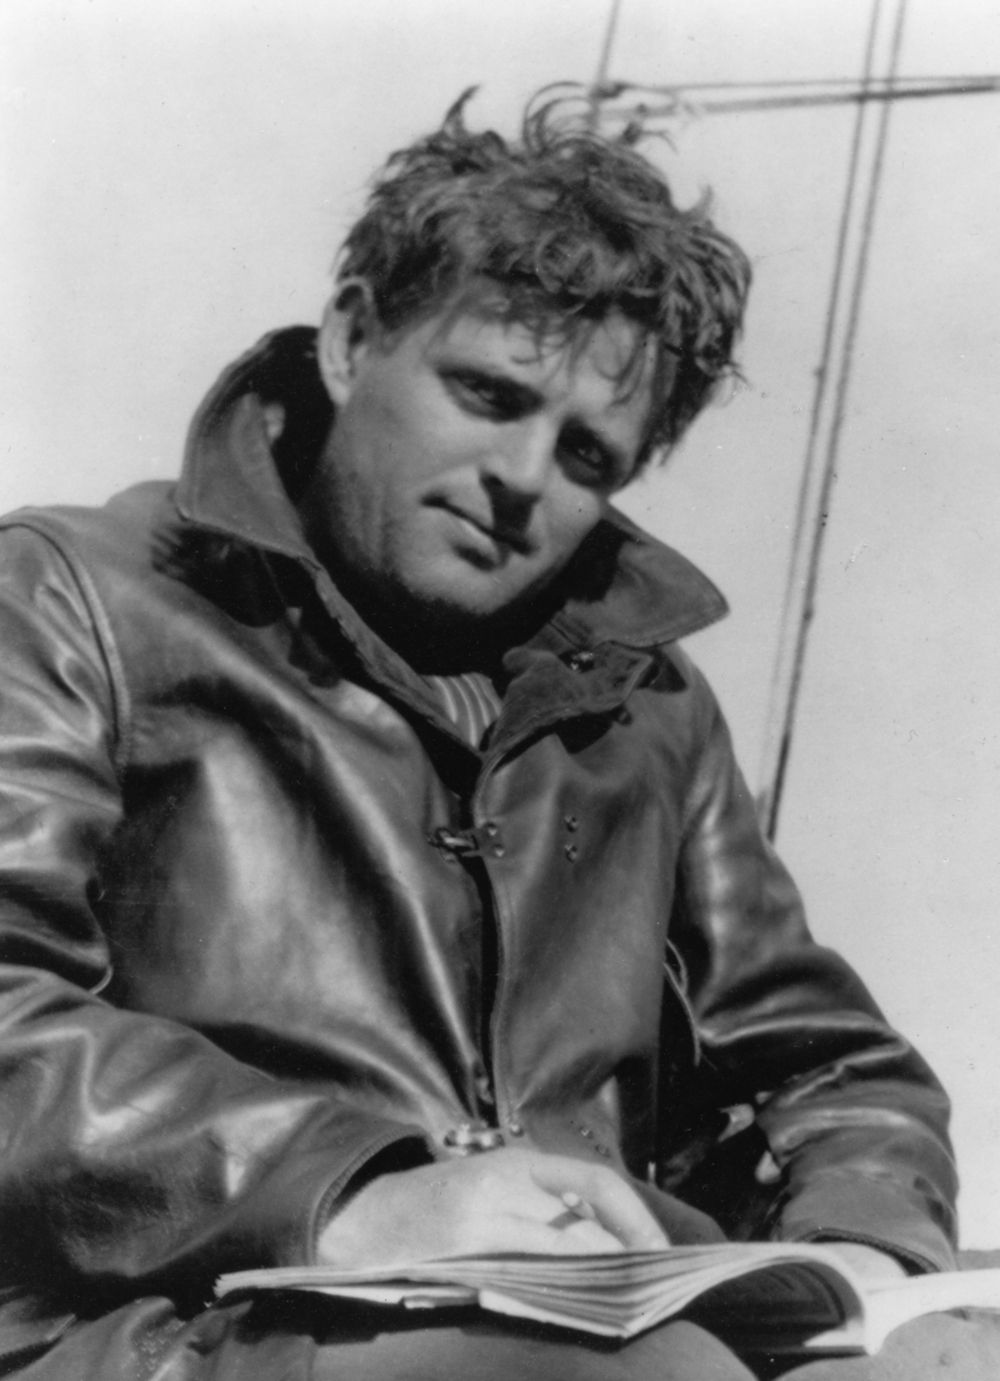 Images About English  Jack London On Pinterest Jack O dcfcfbbfeffddaa English  Jack London